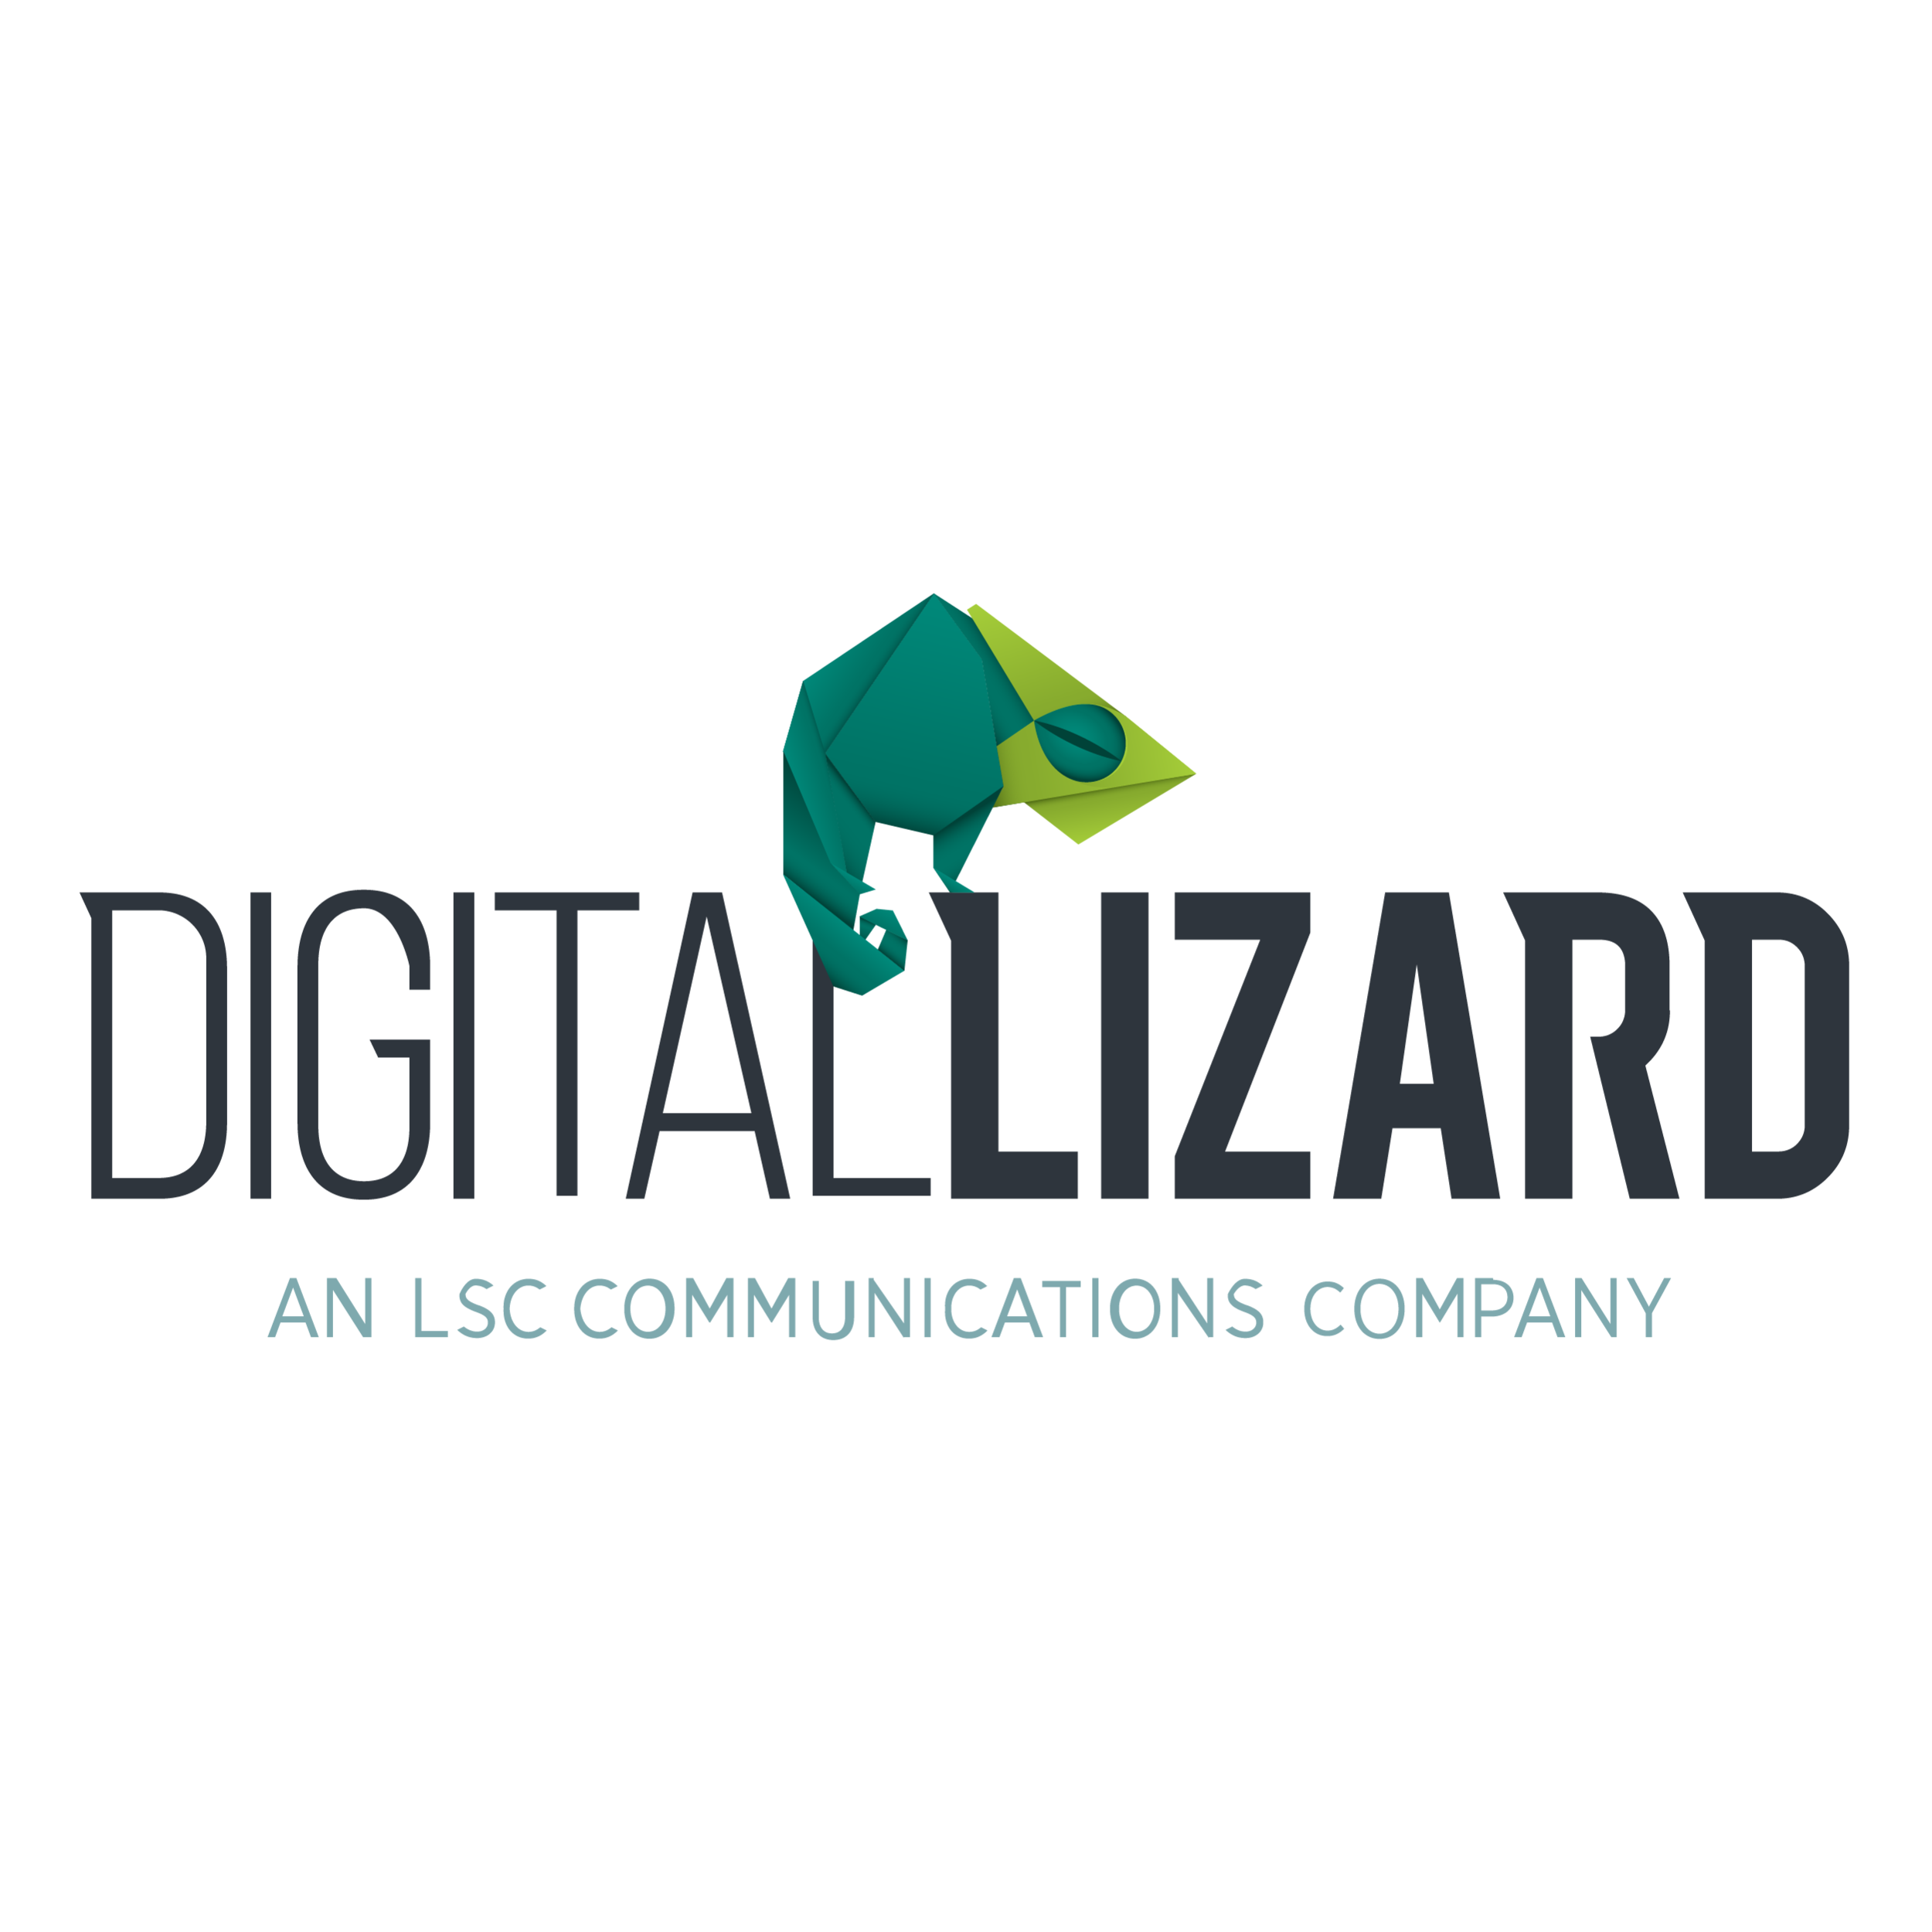 digital lizard - Digital Lizard is one of the most advanced digital print facilities in the United States. A Creel Printing company, Digital Lizard offers full-color variable digital printing, inline finishing, same-day shipping, and a host of leading-edge electronic and web-based solutions. With a strong recognition of the uniqueness of your designs, DL has worked diligently with substrate providers to ensure you have a wide array of papers to choose from. From your trusty standby papers to pearlescent, synthetics, stickers, magnets, linens and felts. Along with superior paper selection, Digital Lizard also offers an abundance of specialty services, such as white ink, foil stamping, embossing, debossing, die cutting, stitching and much much more. Let us help make your visions come to life. digitallizard.com